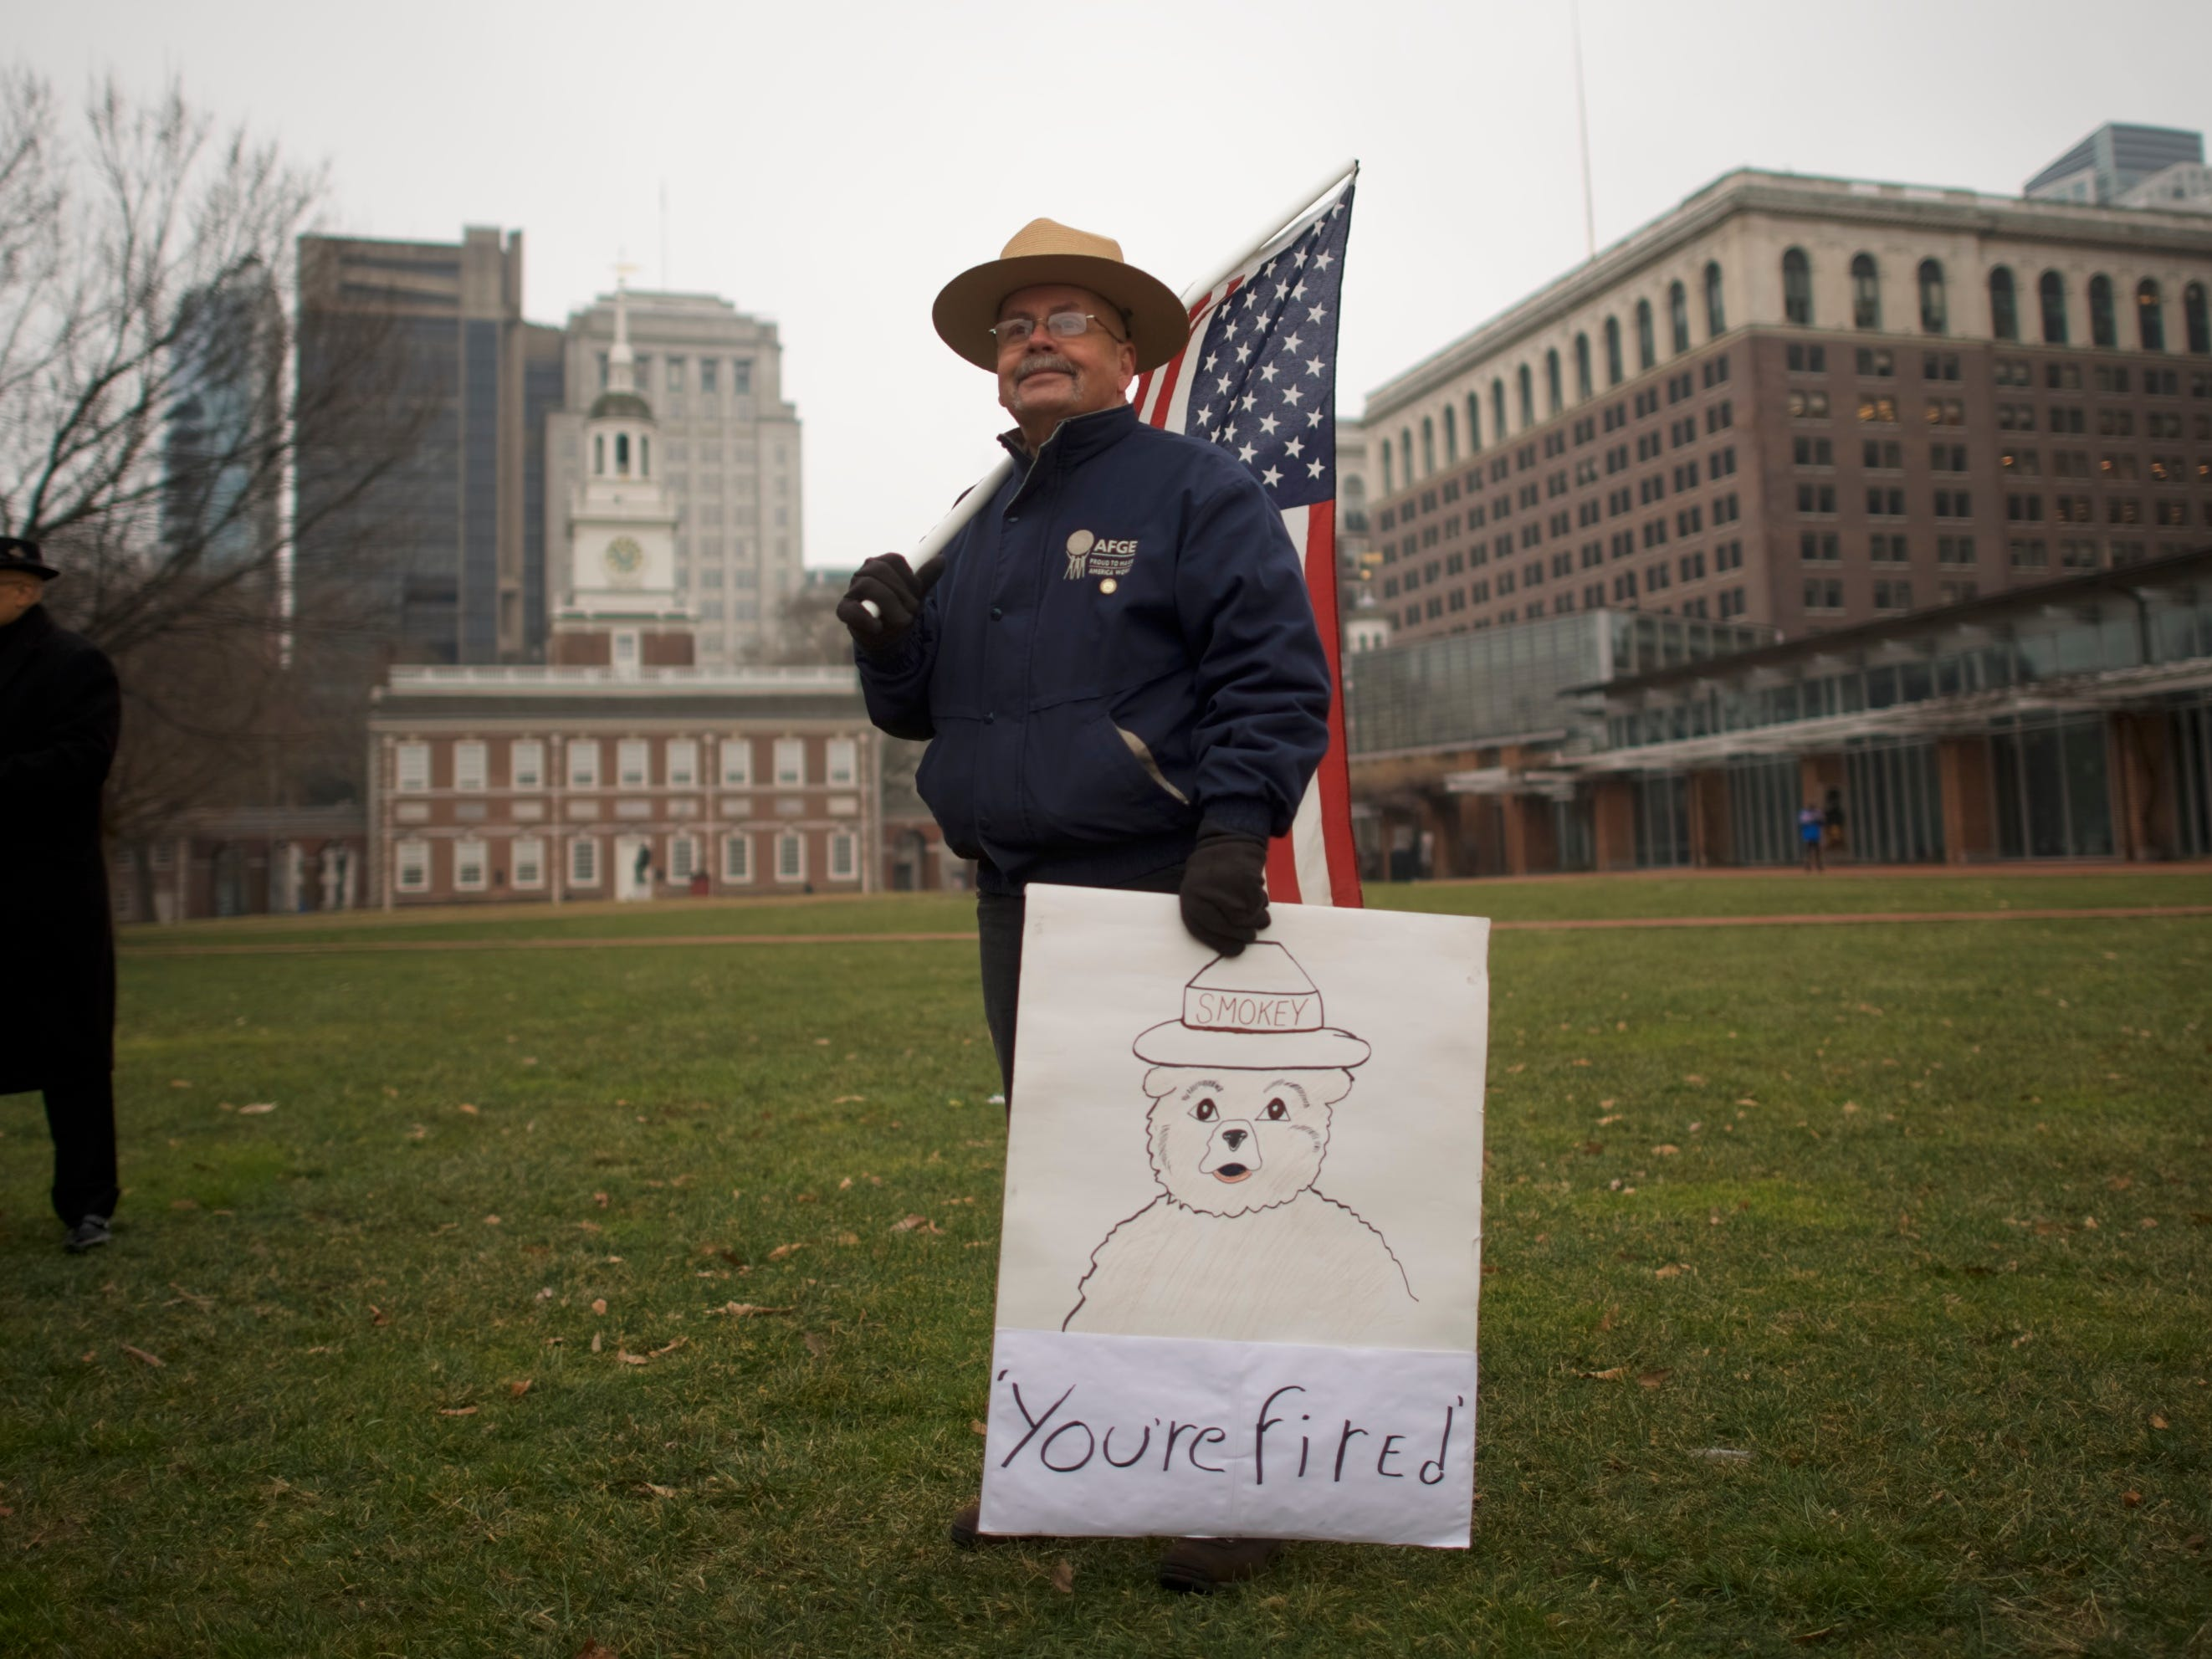 "PHILADELPHIA, PA - JANUARY 08:  David Fitzpatrick, 64, a Park Ranger, holds an American flag and a placard stating ""You're fired"" with ""Smokey the Bear,"" after a protest rally with furloughed federal workers and area elected officials in front of Independence Hall on January 8, 2019 in Philadelphia, Pennsylvania.  The government shutdown, now lasting 18 days, marks the second longest United States in history, affecting about 800,000 federal employees.  (Photo by Mark Makela/Getty Images) ORG XMIT: 775278689 ORIG FILE ID: 1079379668"